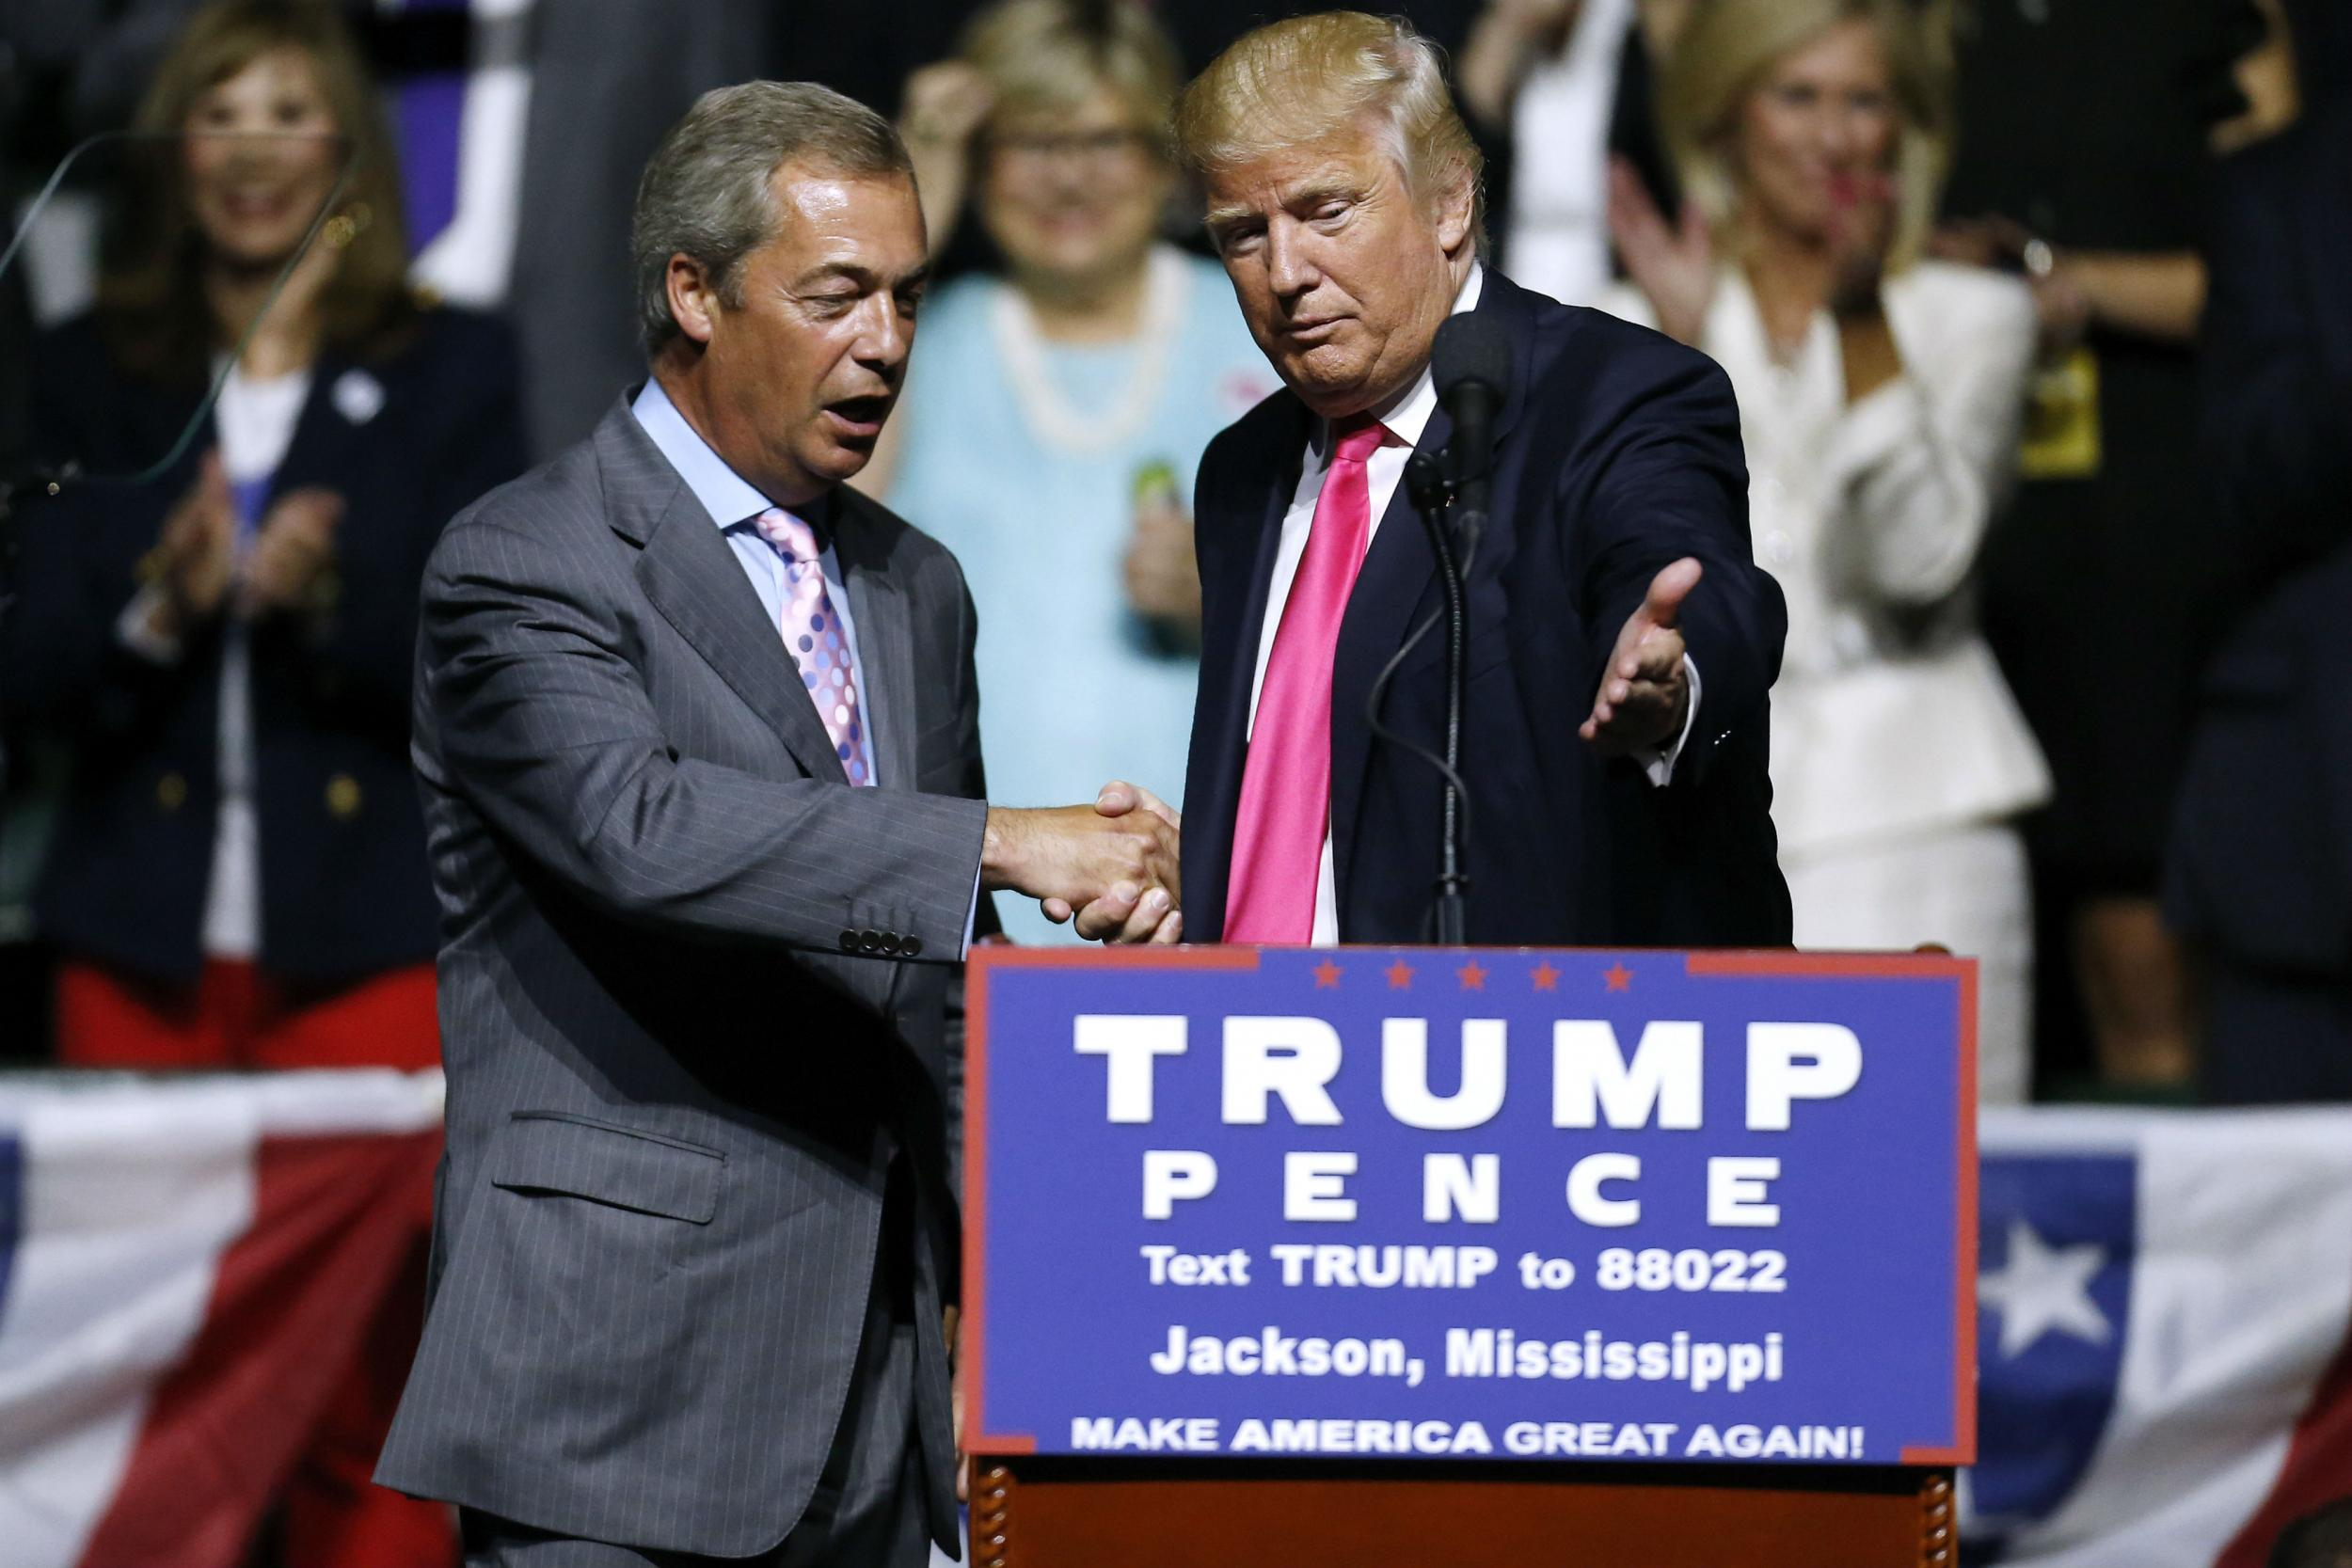 Nigel Farage to start petition to secure Donald Trump the Nobel Peace Prize